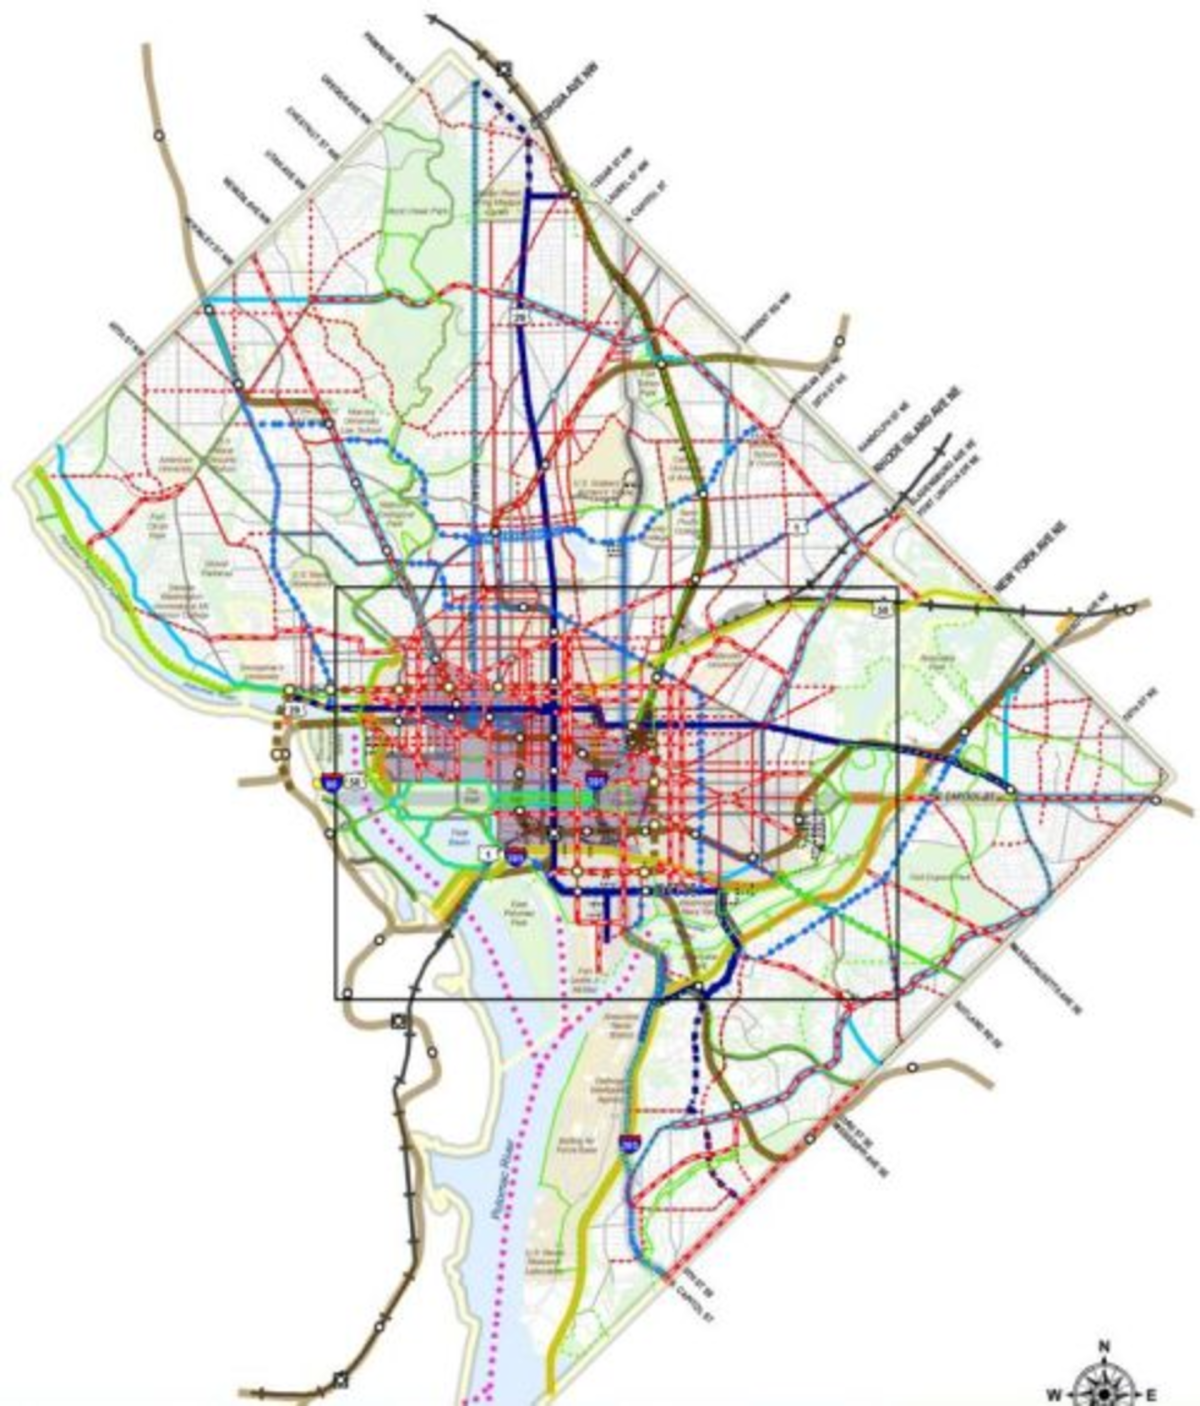 A map of the planned citywide transit network, including bike lanes (red), streetcars (dark blue), high-capacity transit lines (light blue), and roads (gray).